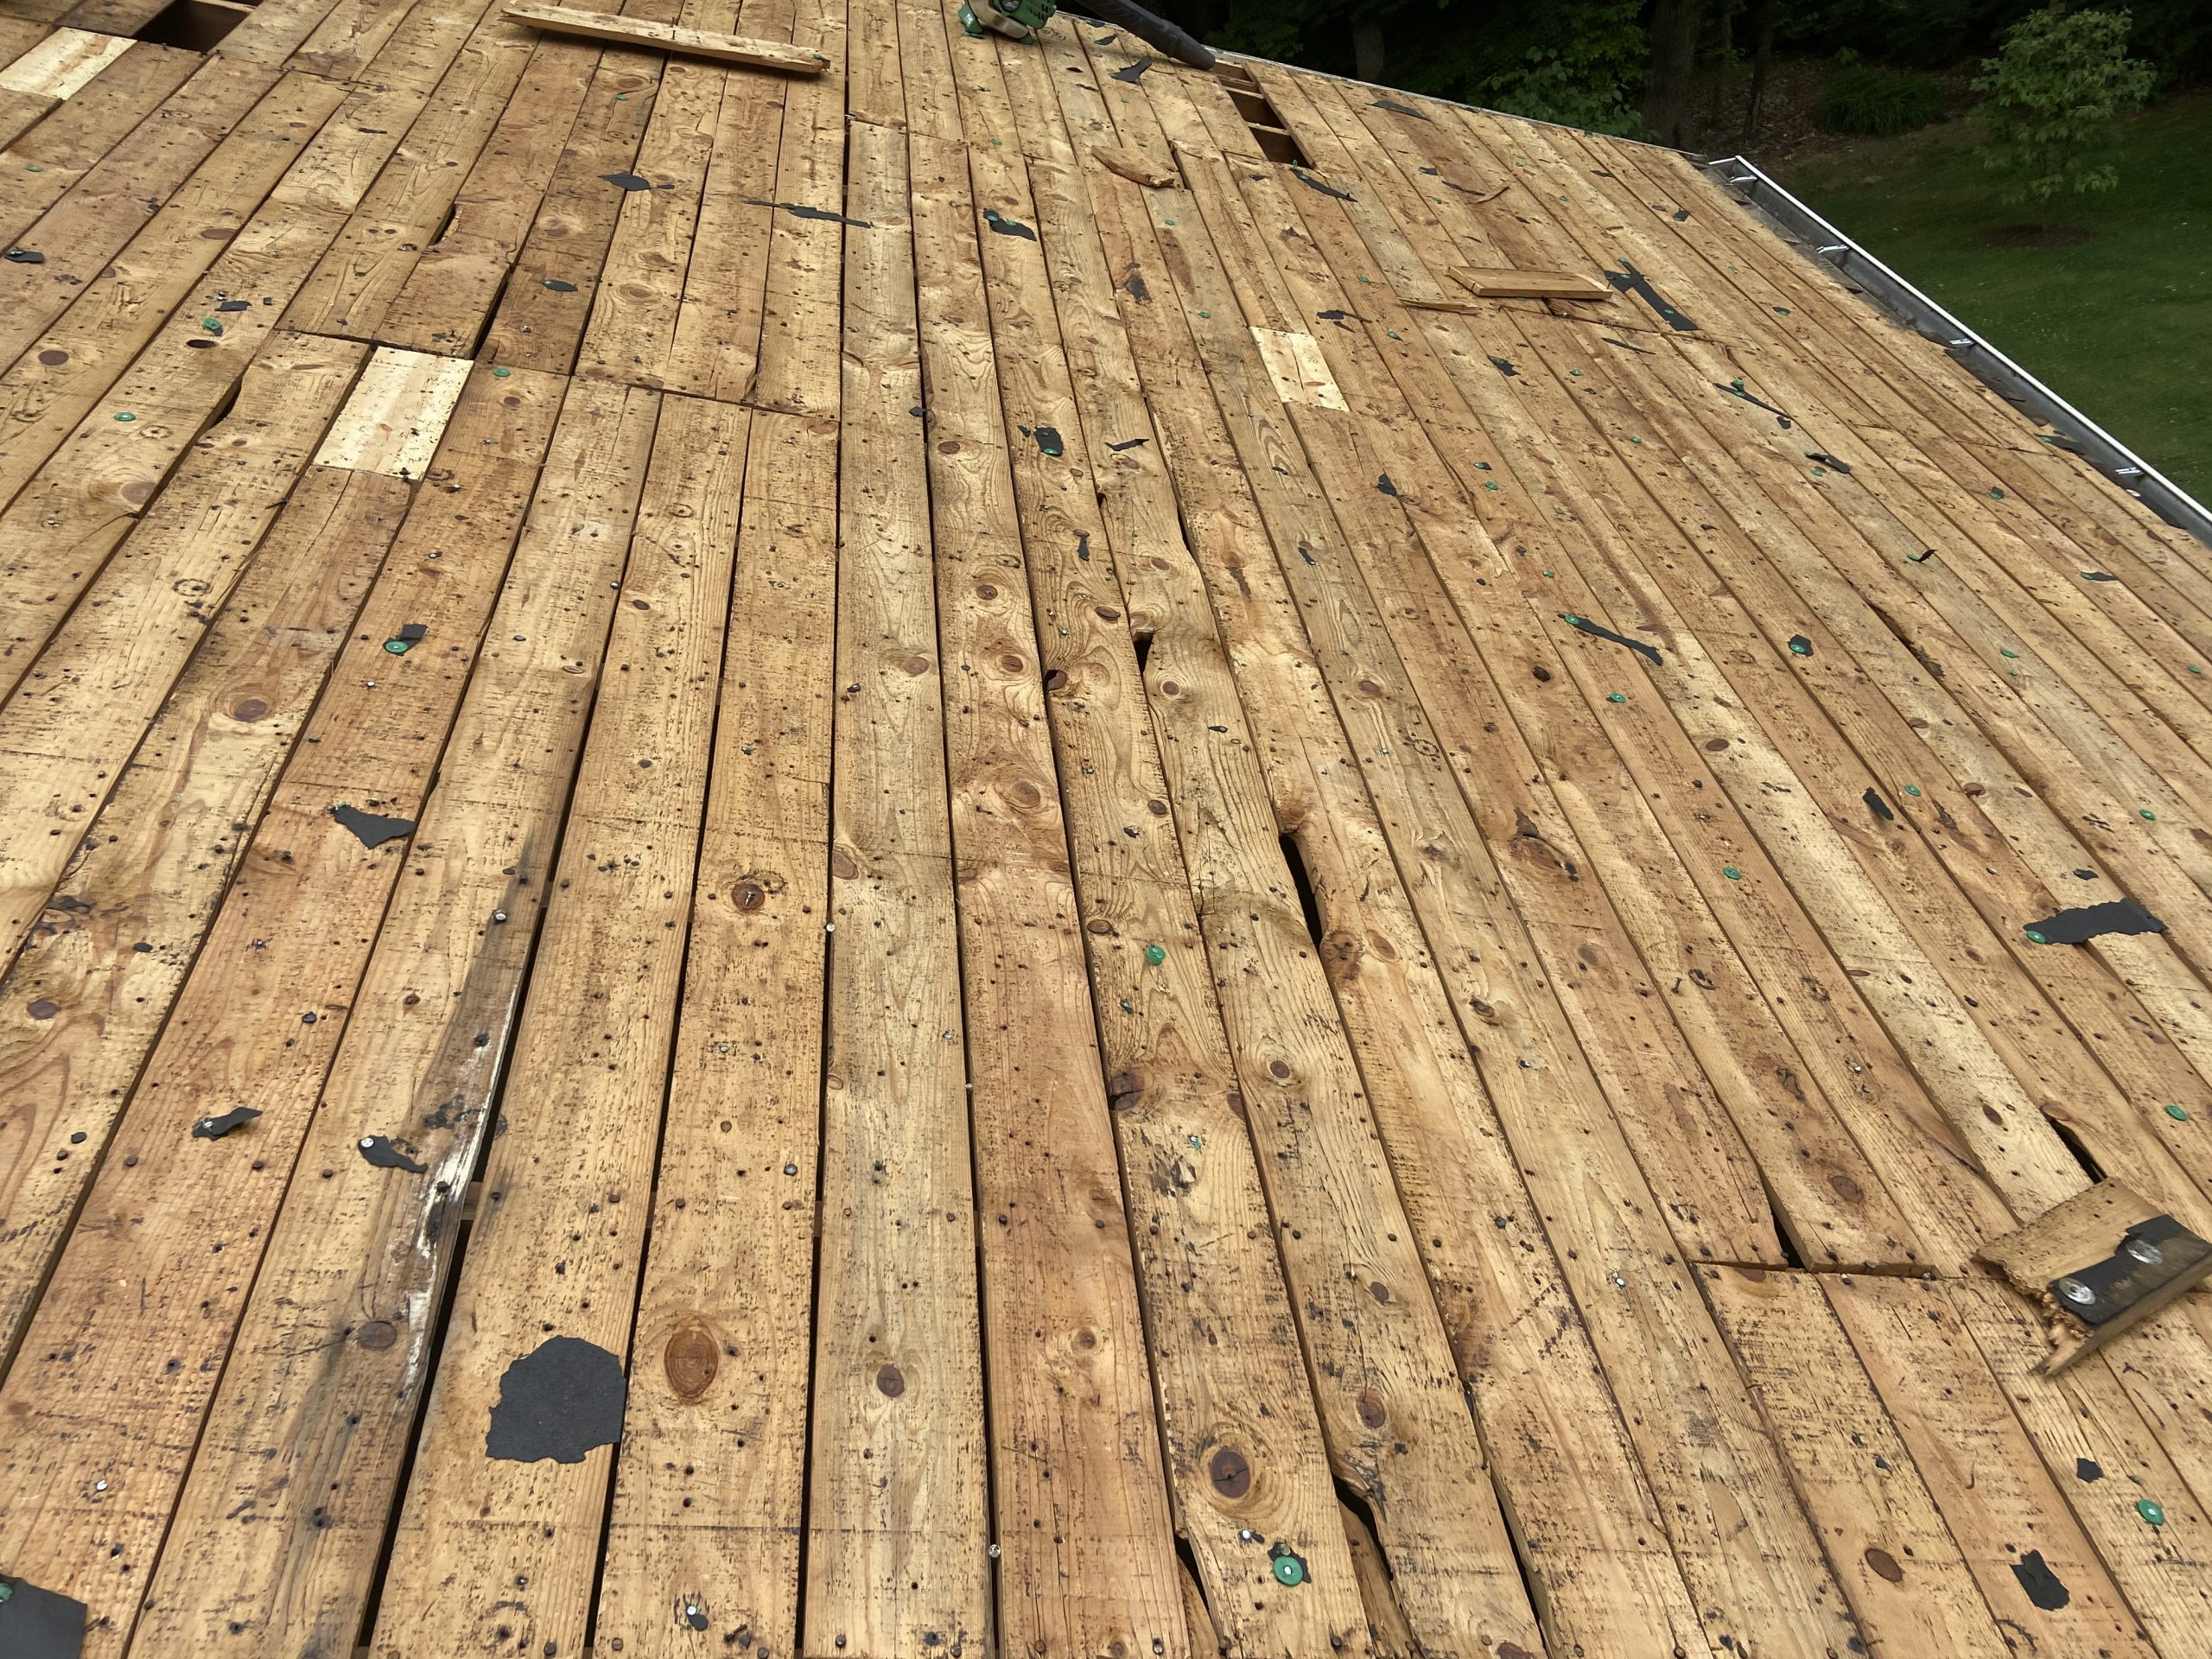 This is an image of the roof deck boards that are being replaced.